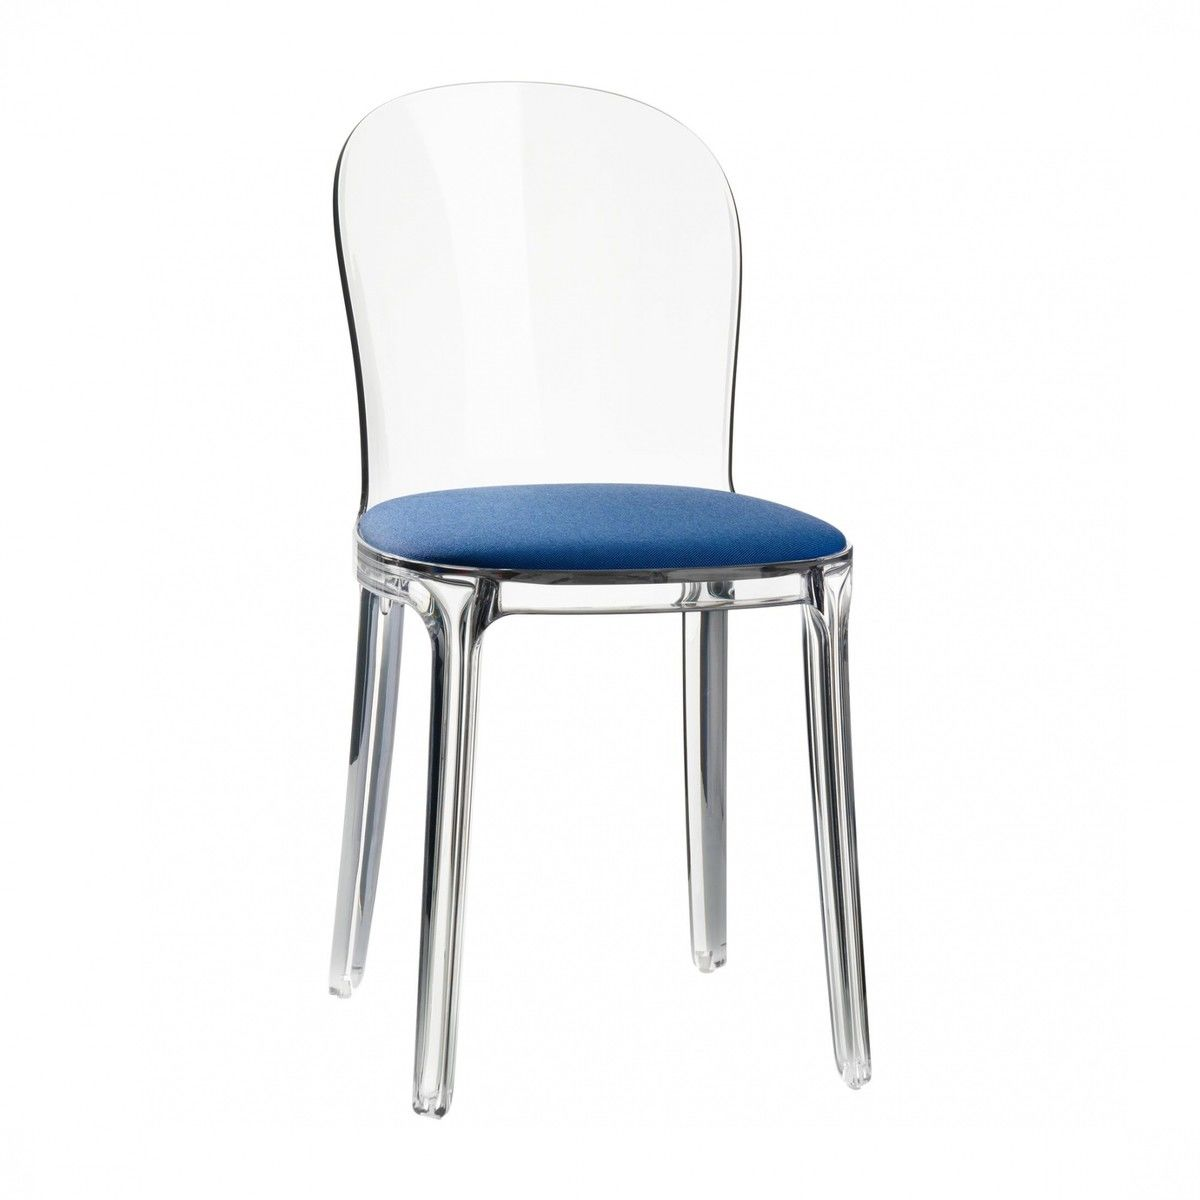 Vanity chair stuhl transparent magis - Transparenter stuhl ...